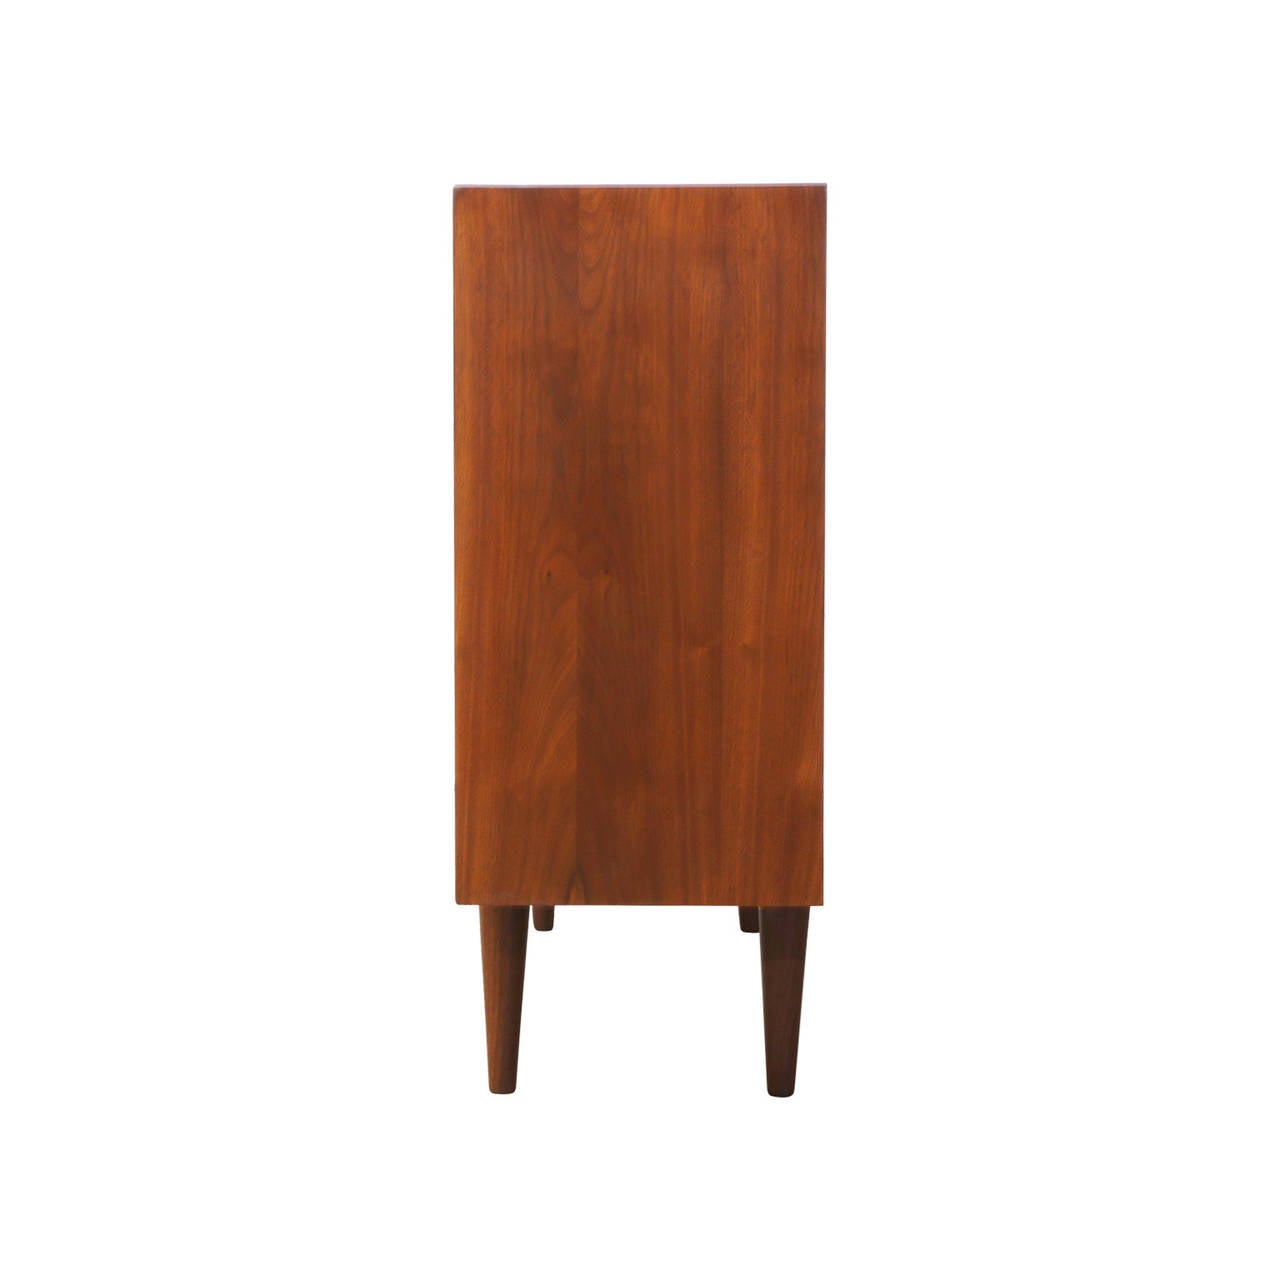 Midcentury Walnut Credenza With Glass Sliding Doors At 1stdibs